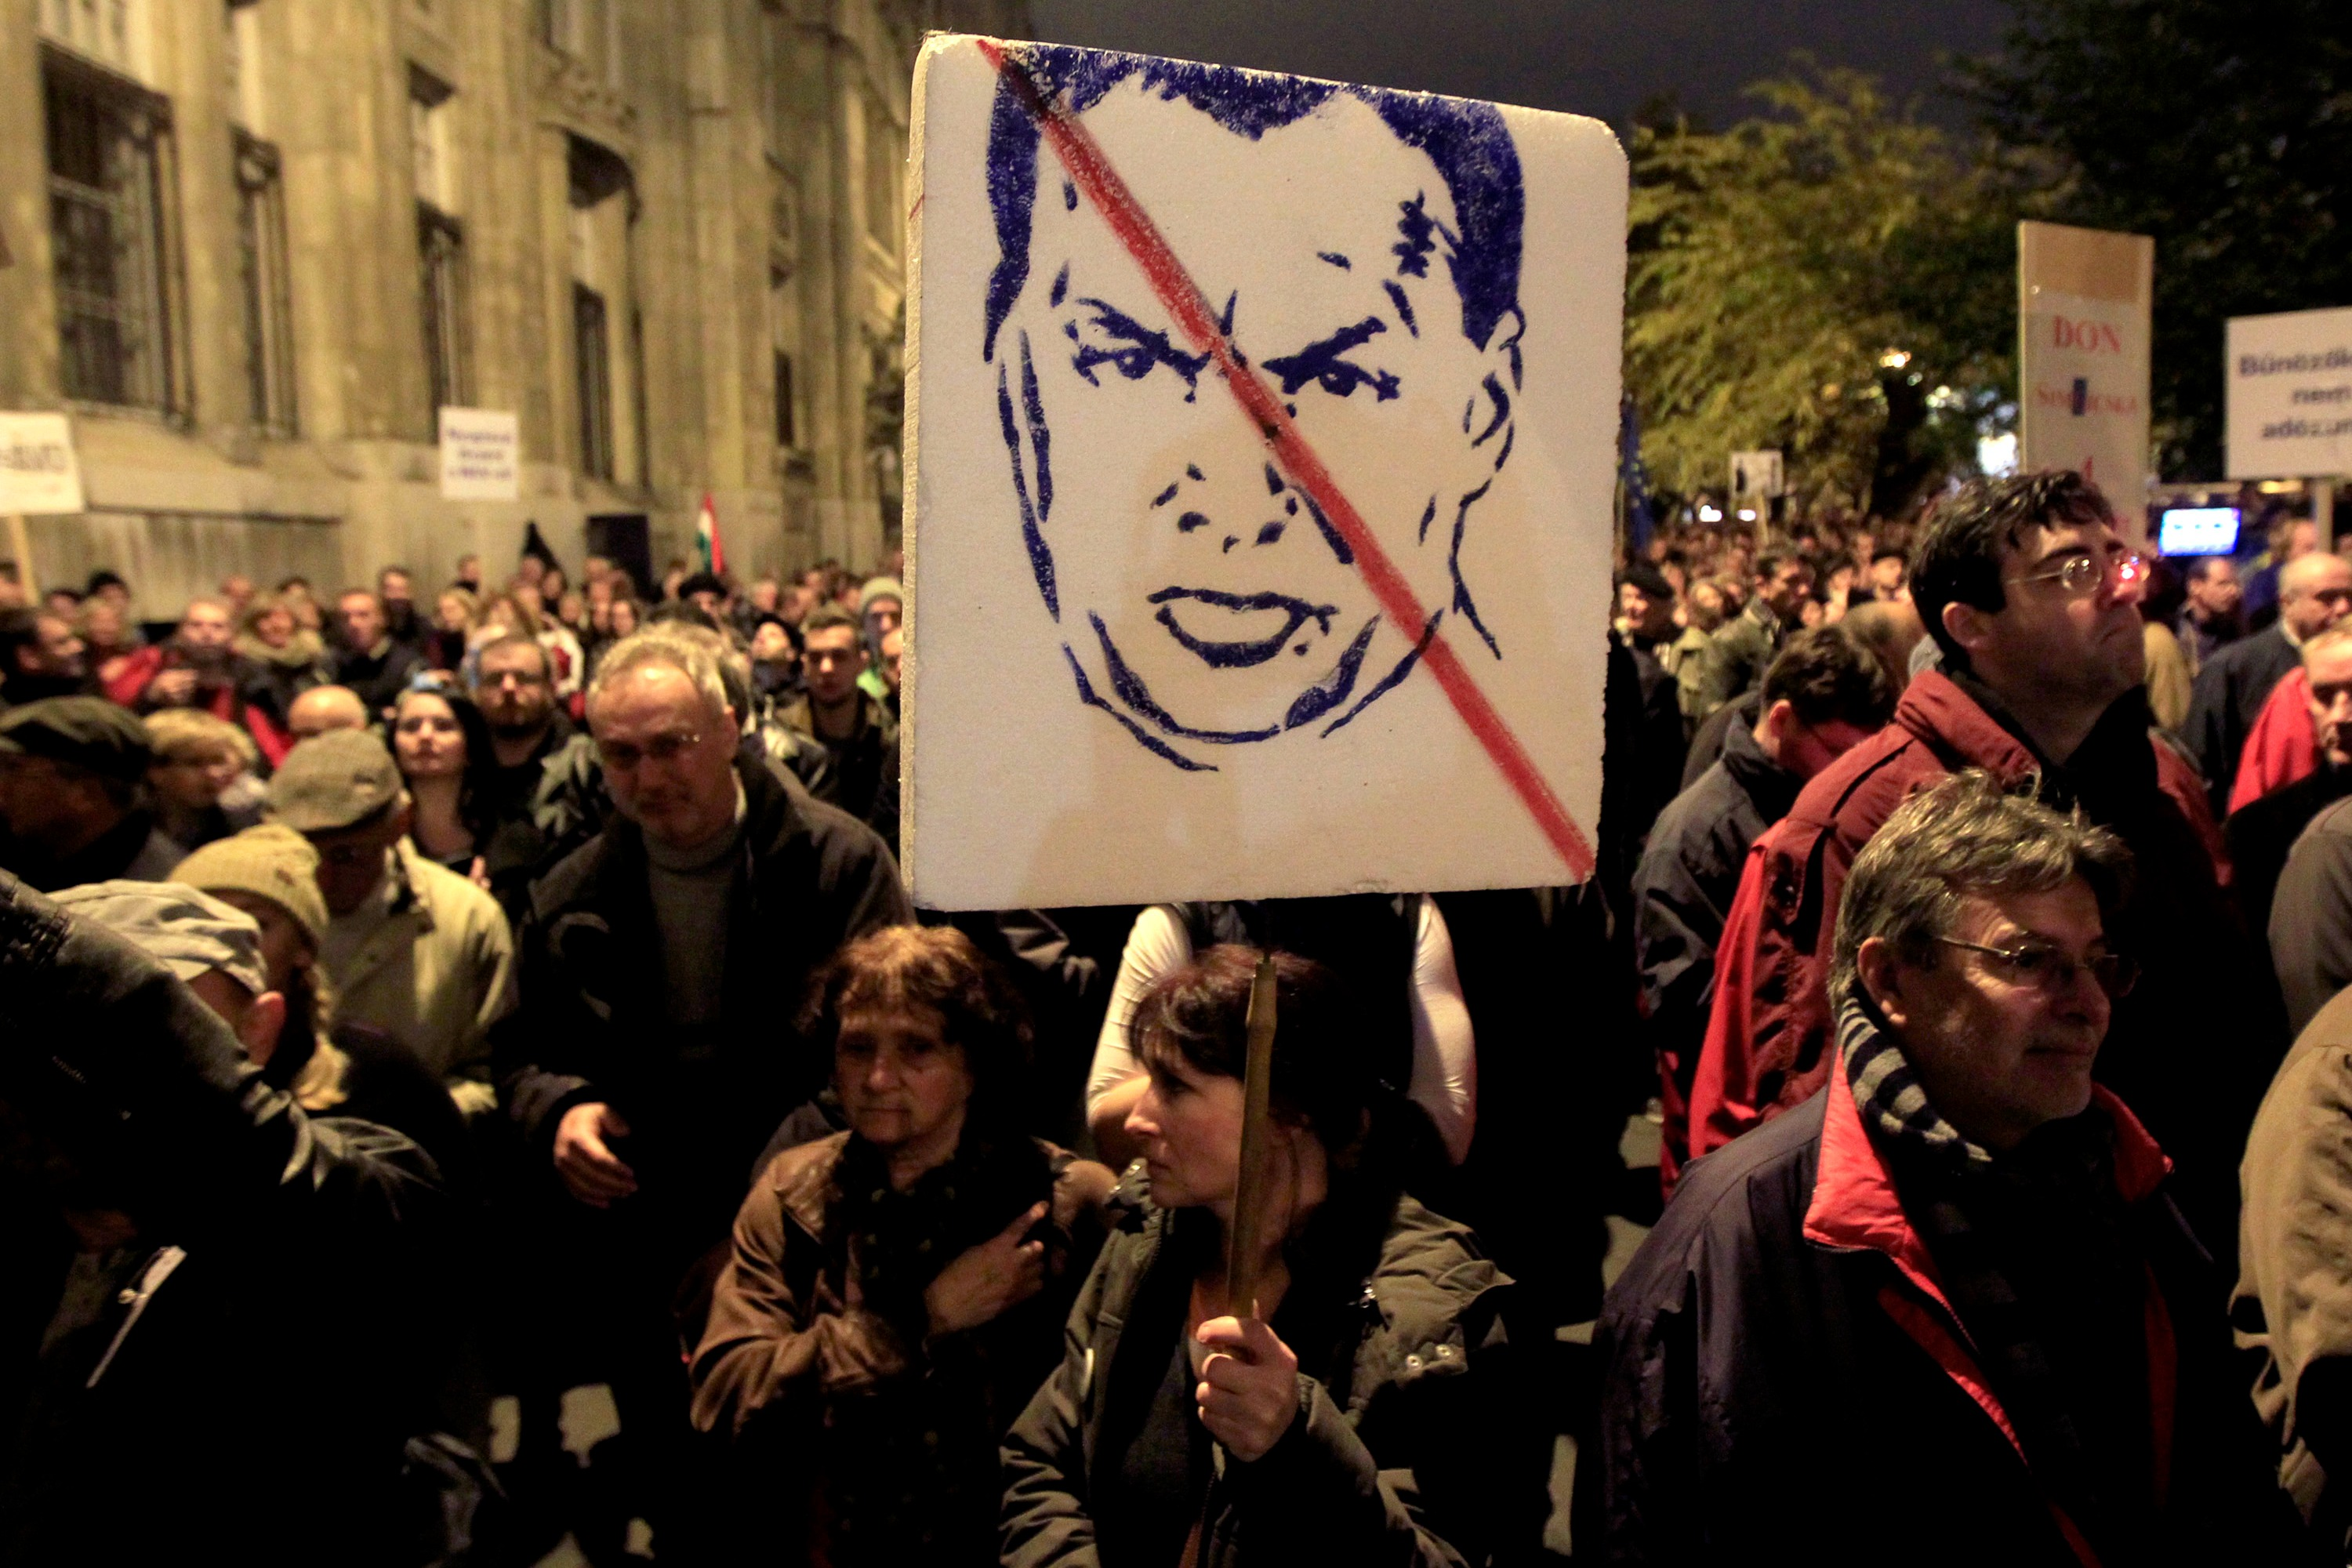 A woman carries a placard with the likeness of Hungary's Prime Minister Viktor Orbán as thousands of Hungarians protest against perceived corruption at the country's tax authority and lack of wider democratic freedoms, in Budapest, 9 November 2014 [Reuter